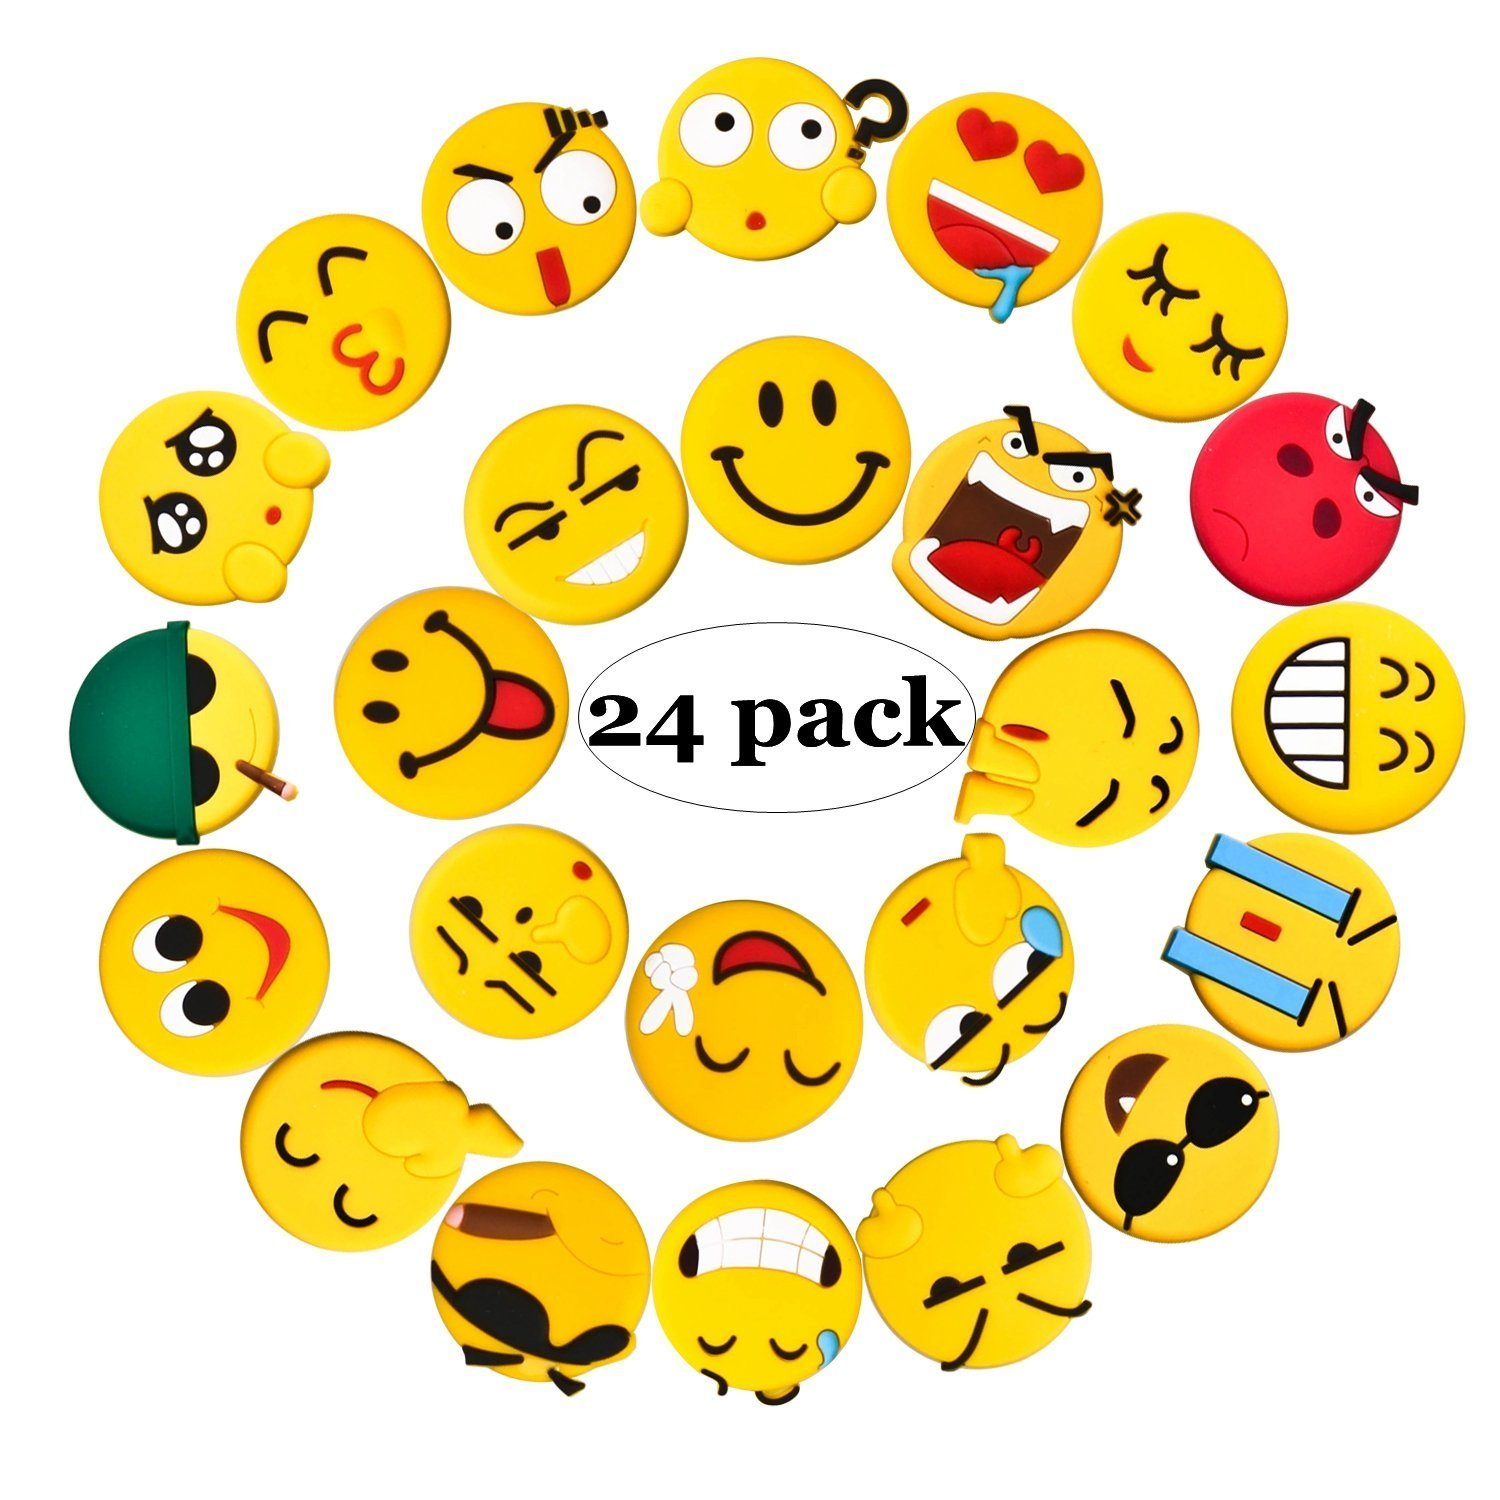 Fridge Magnets, 24 Pack Emoji Refrigerator PVC Magnets, Novelty Kitchen Decorative Whiteboard Office Supplies Funny Housewarming Gift FJBMW